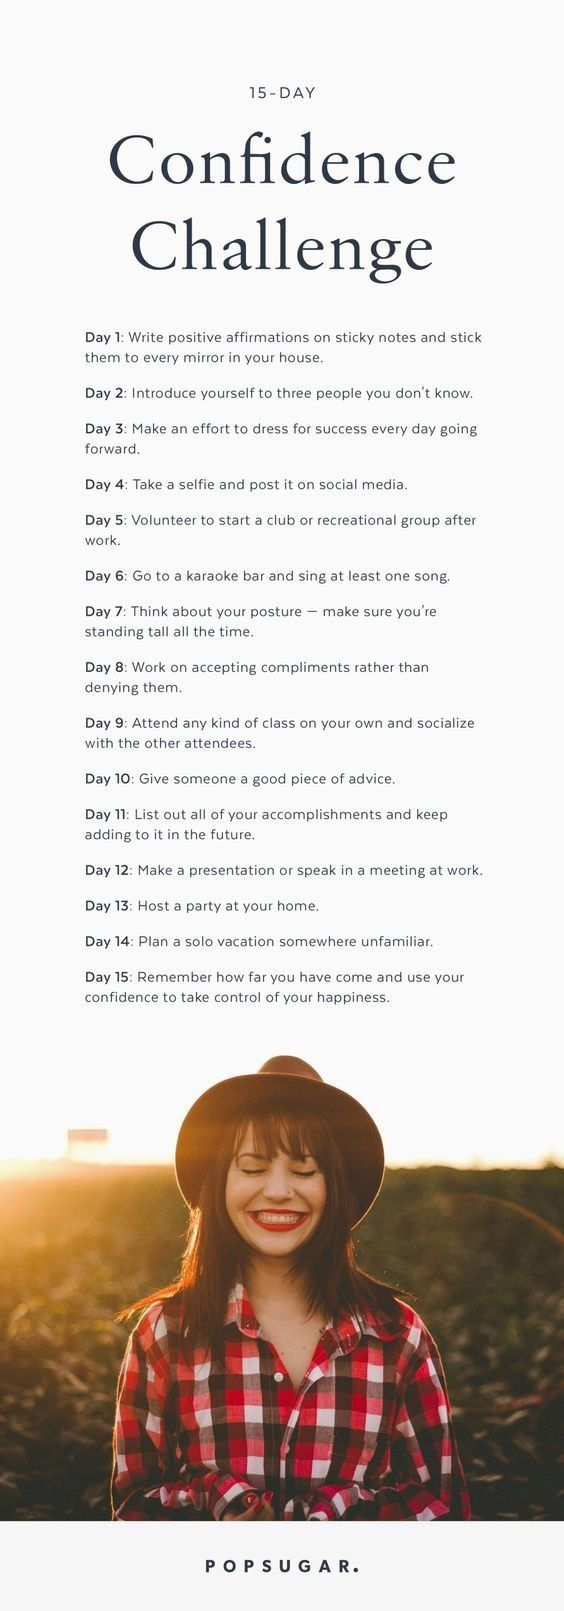 The 15 Day Confidence Challenge Believe In Yourself More Than Ever Challenge Accepted Self Care Self Self Improvement